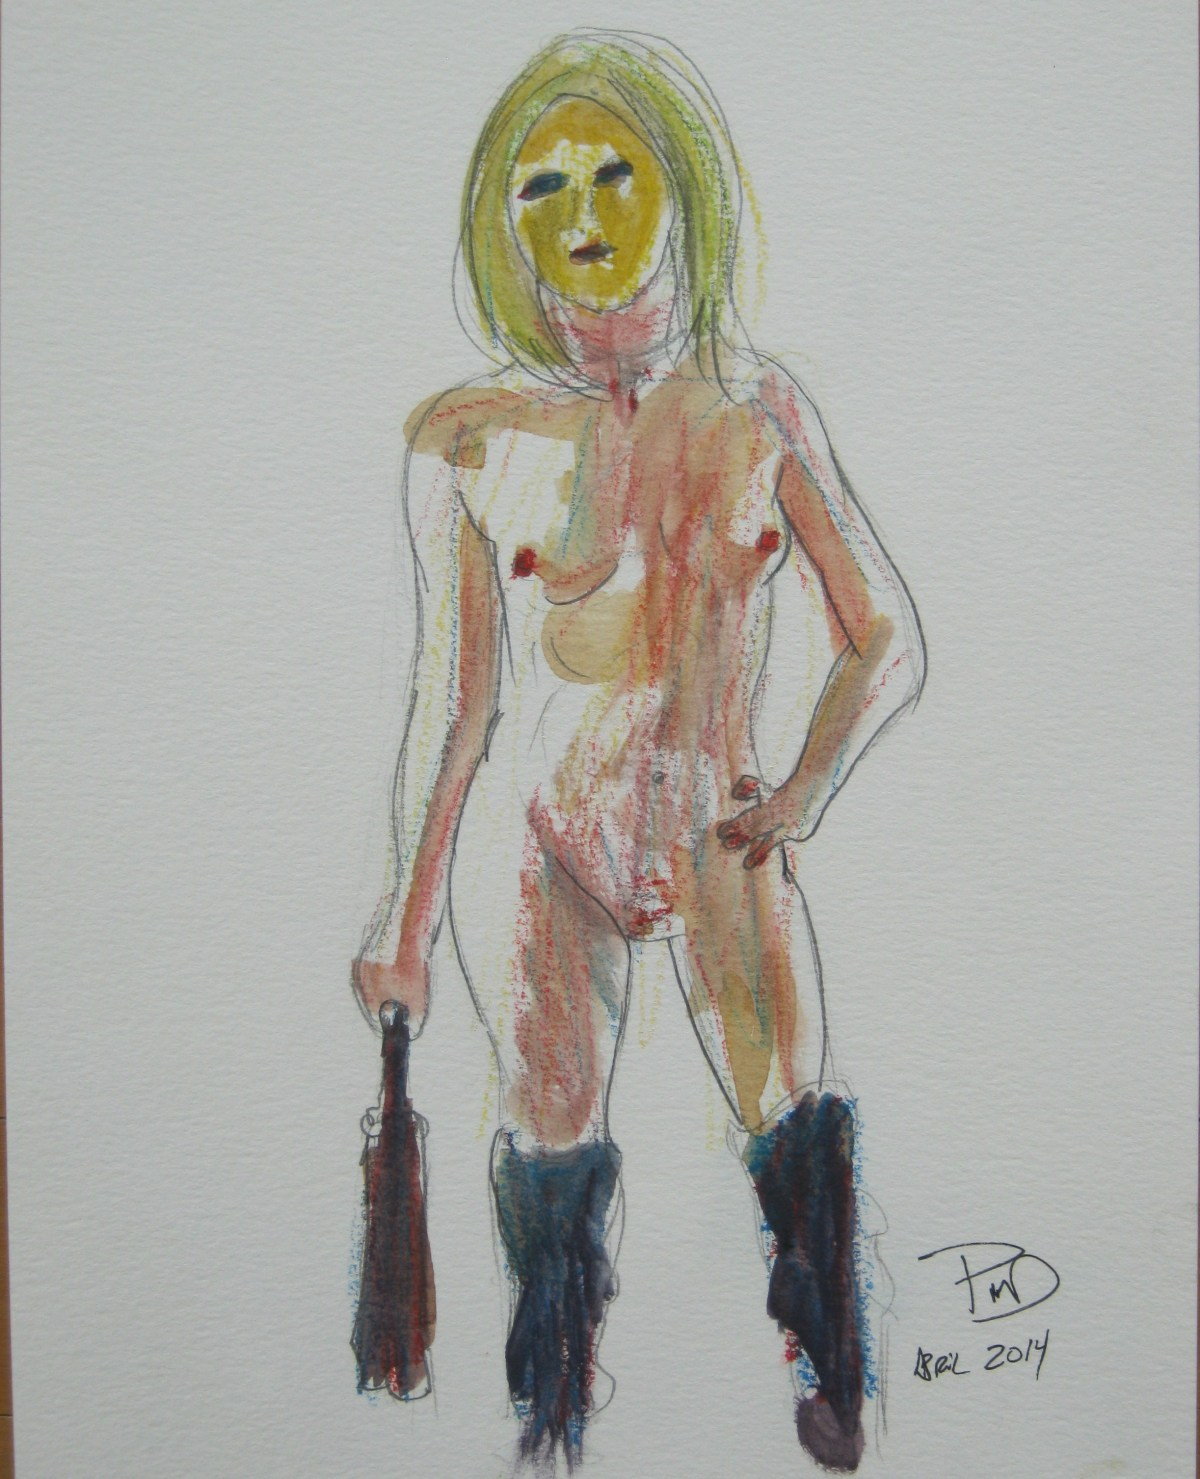 A sketch of Jillian Page wearing gold mask and boots with flogger, for artists' workshop on body acceptance in Montreal on April 27, 2014. (Photo of sketch by Jillian Page